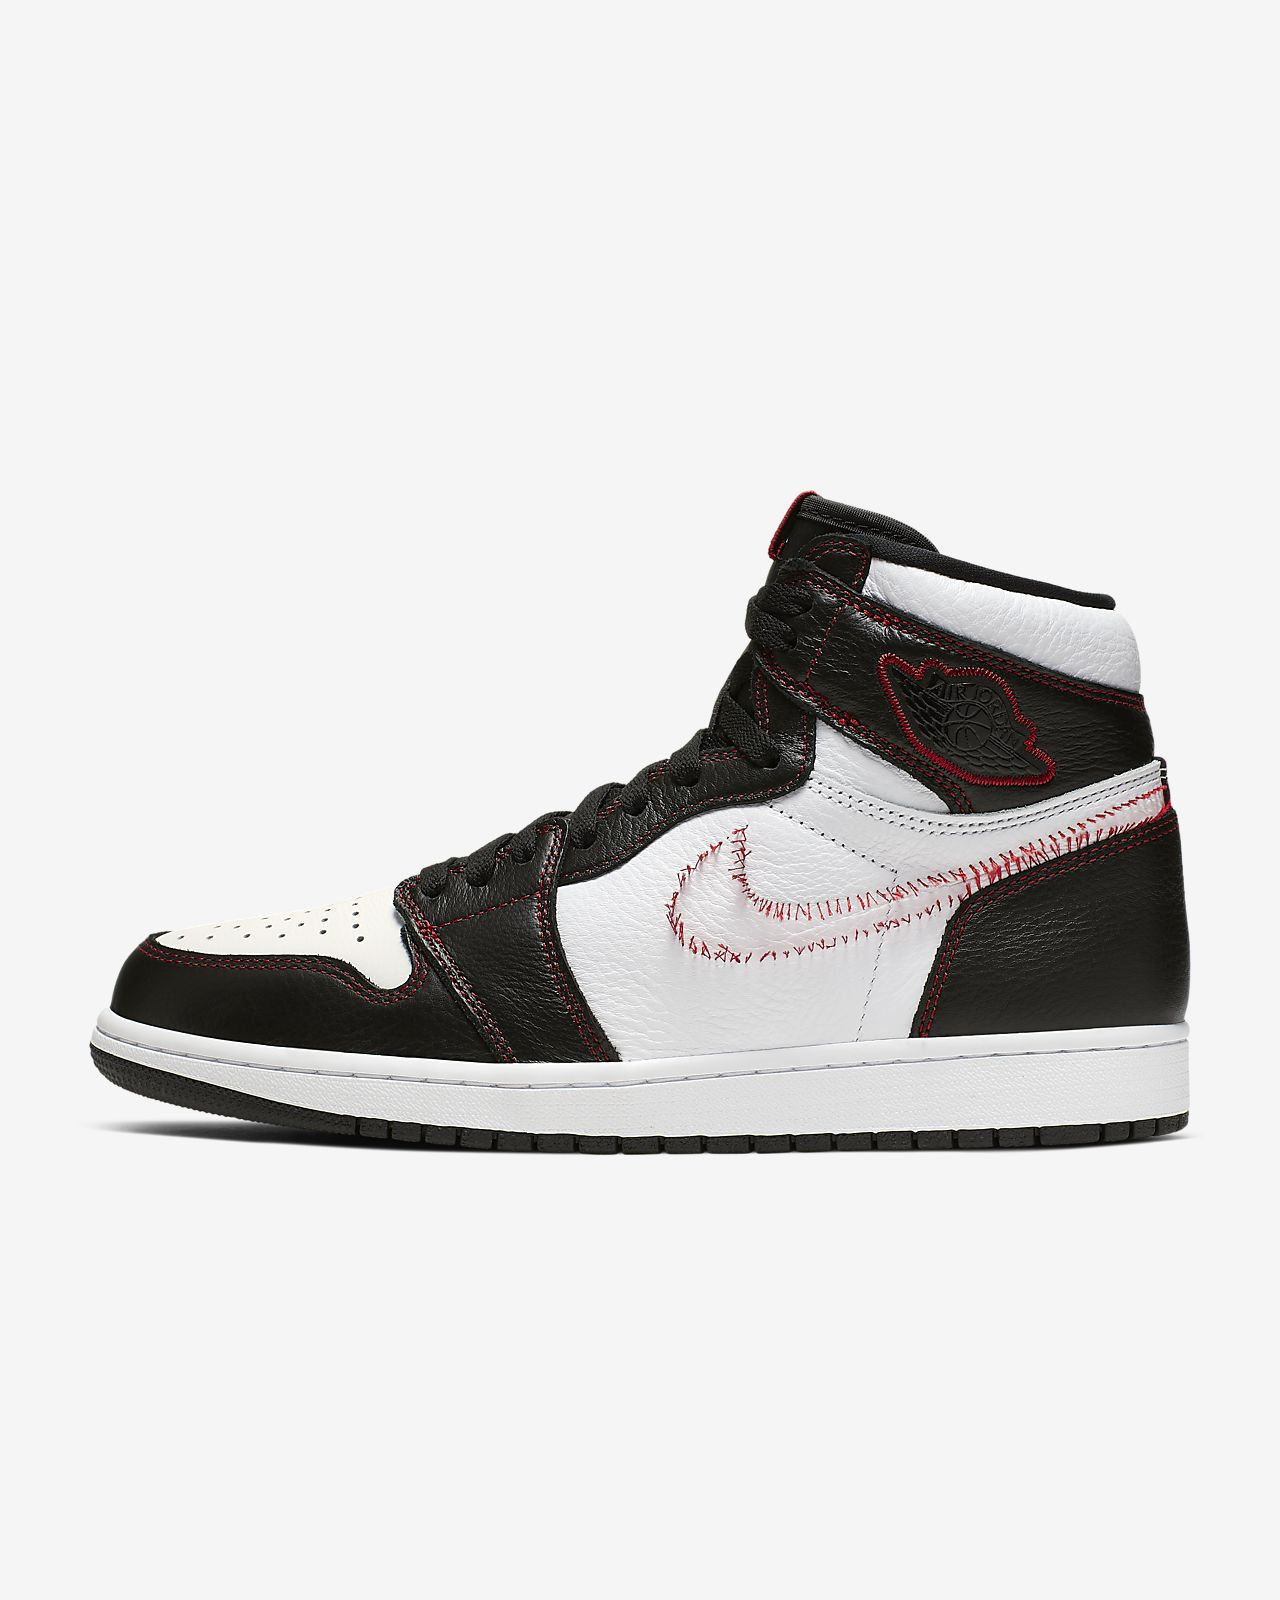 quality design 4c071 cad49 Air Jordan 1 High OG Defiant Men's Shoe